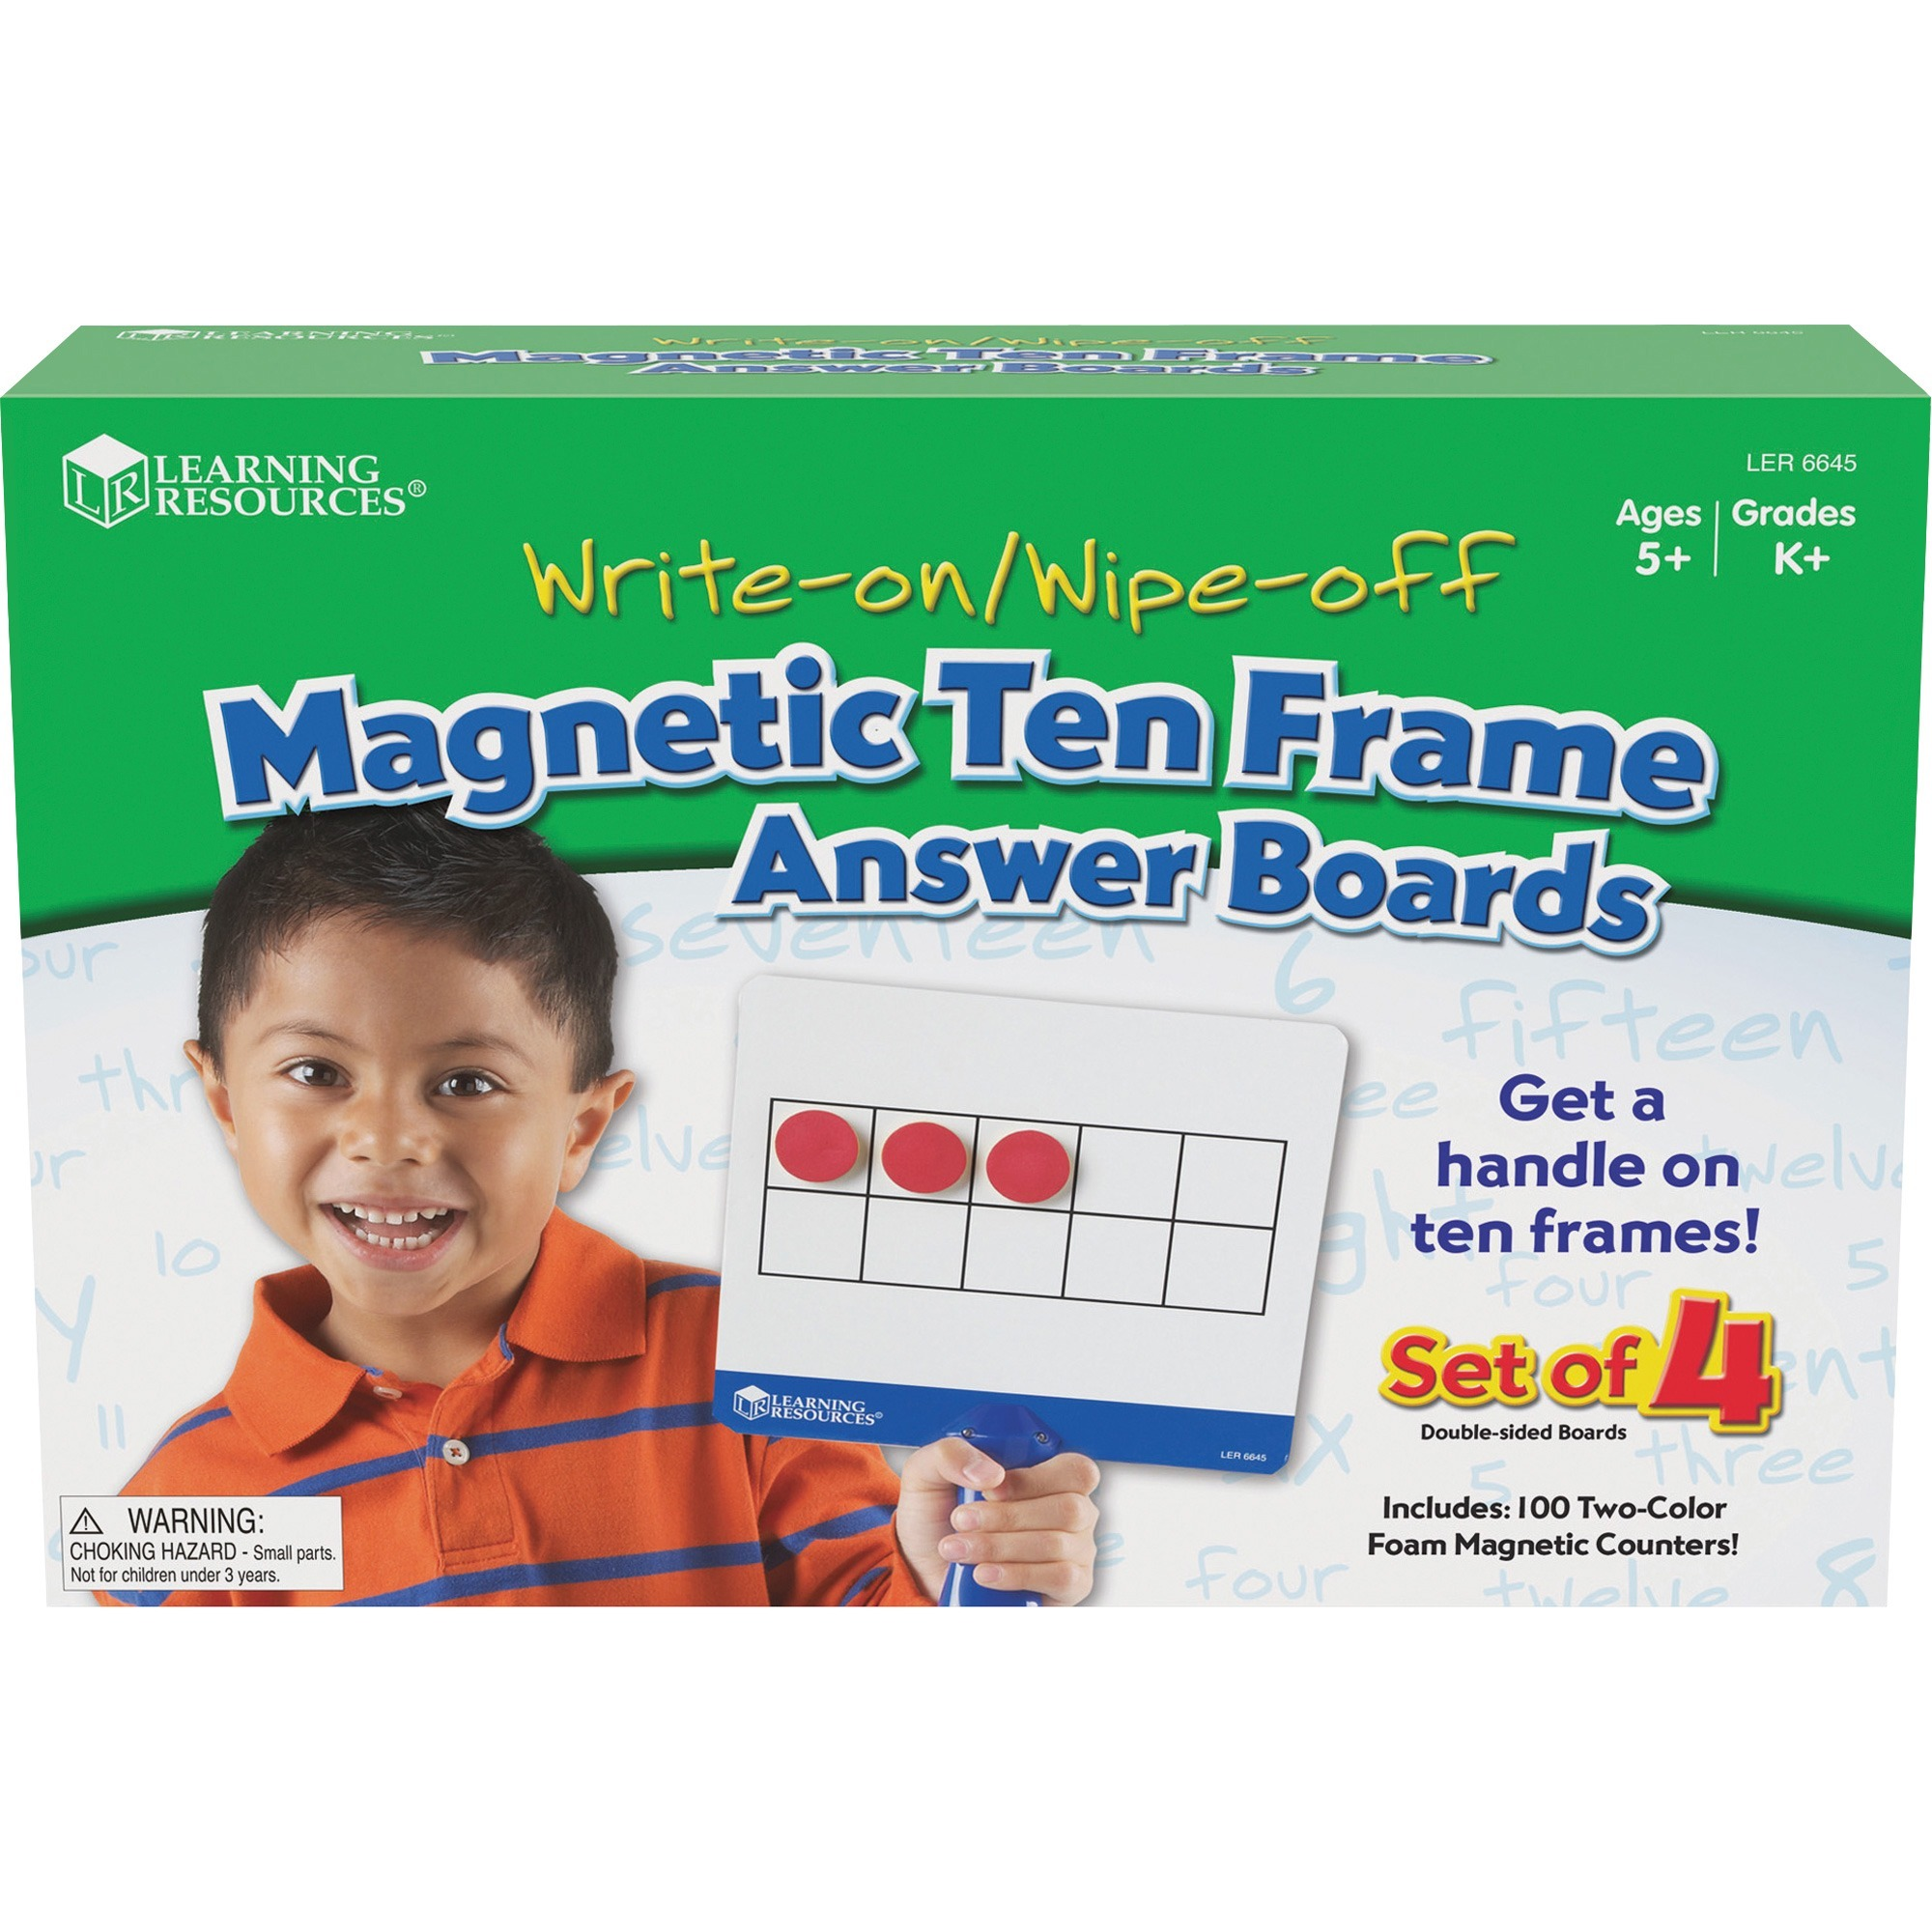 Learning Resources Magnetic 10-frame Answer Boards